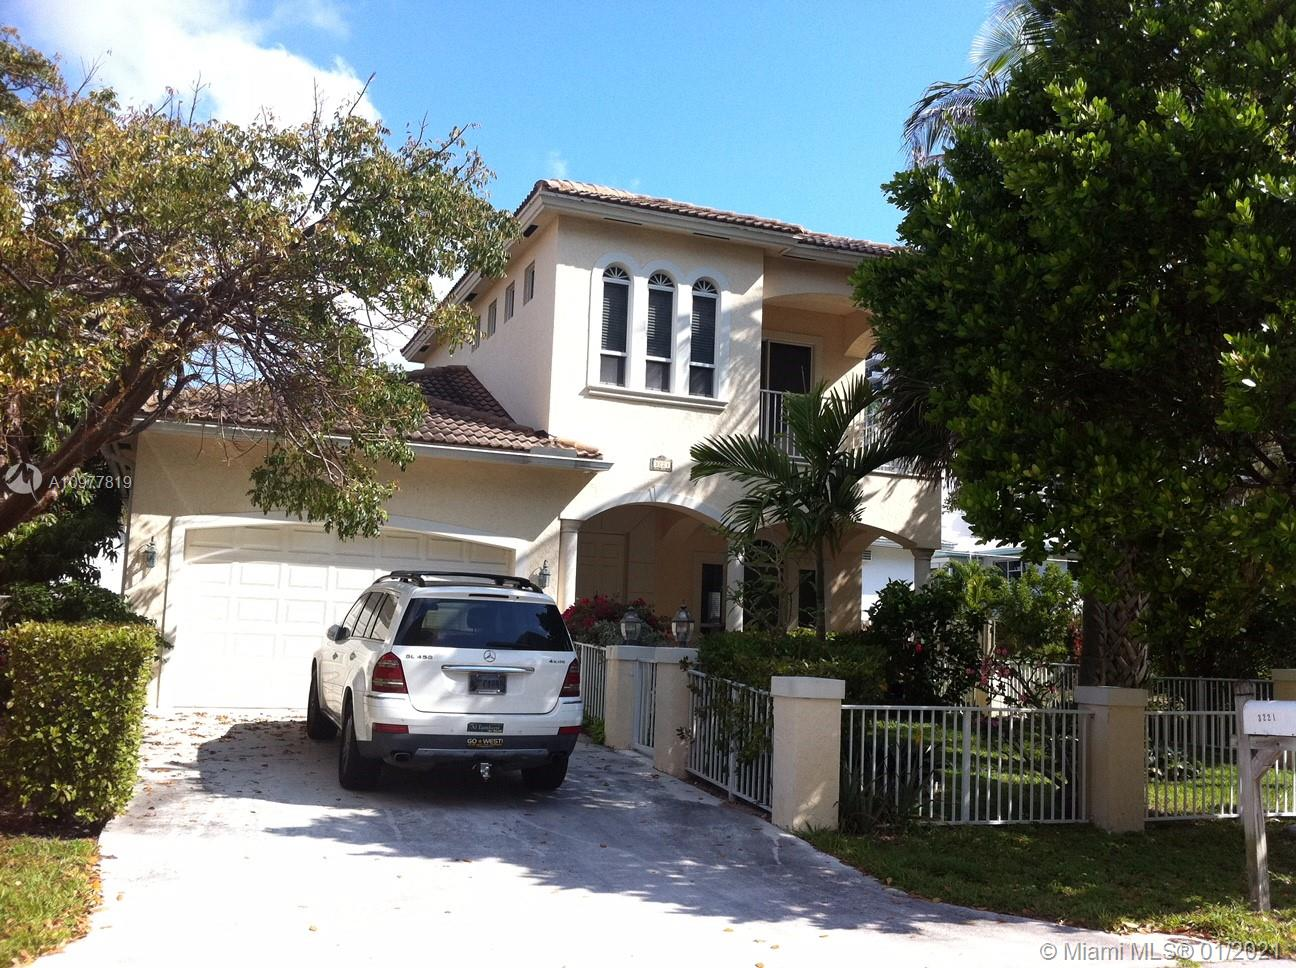 INVESTORS - Awesome Home. Collect your Luxury Rental Checks - GORGEOUS LUXURY SINGLE FAMILY HOME -Walk to beautiful Pompano Beach! JUST ONE BLOCK AWAY FROM THE OCEAN with ocean view from the second floor balcony. Can be your primary residence, second home or VACATION RENTAL INCOME (sleep 12-14). Estimated at 4-5,000 minimum per week, no restrictions). ALL BEDROOMS ARE MASTERS !!! Great Kitchen open to a Large Family Room with builtin niches, etc. Large Living and Dining Room 2nd floor is it's own 1 bedroom suite, with living room, sitting room and balcony.